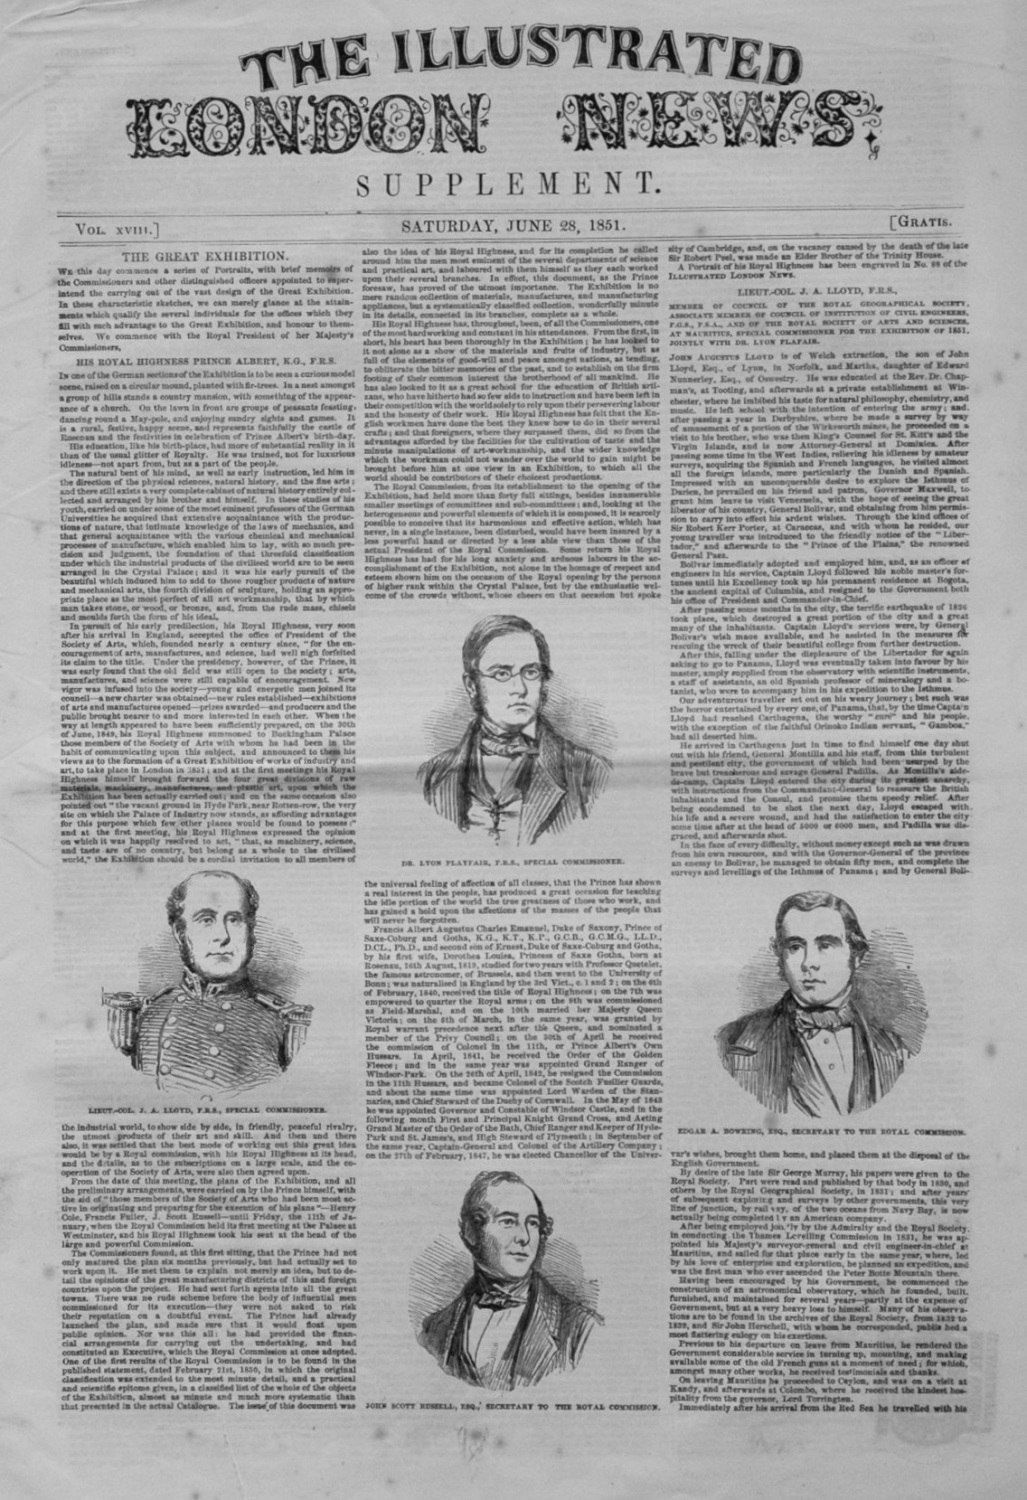 Illustrated London News (Supplement) June 28th 1851.